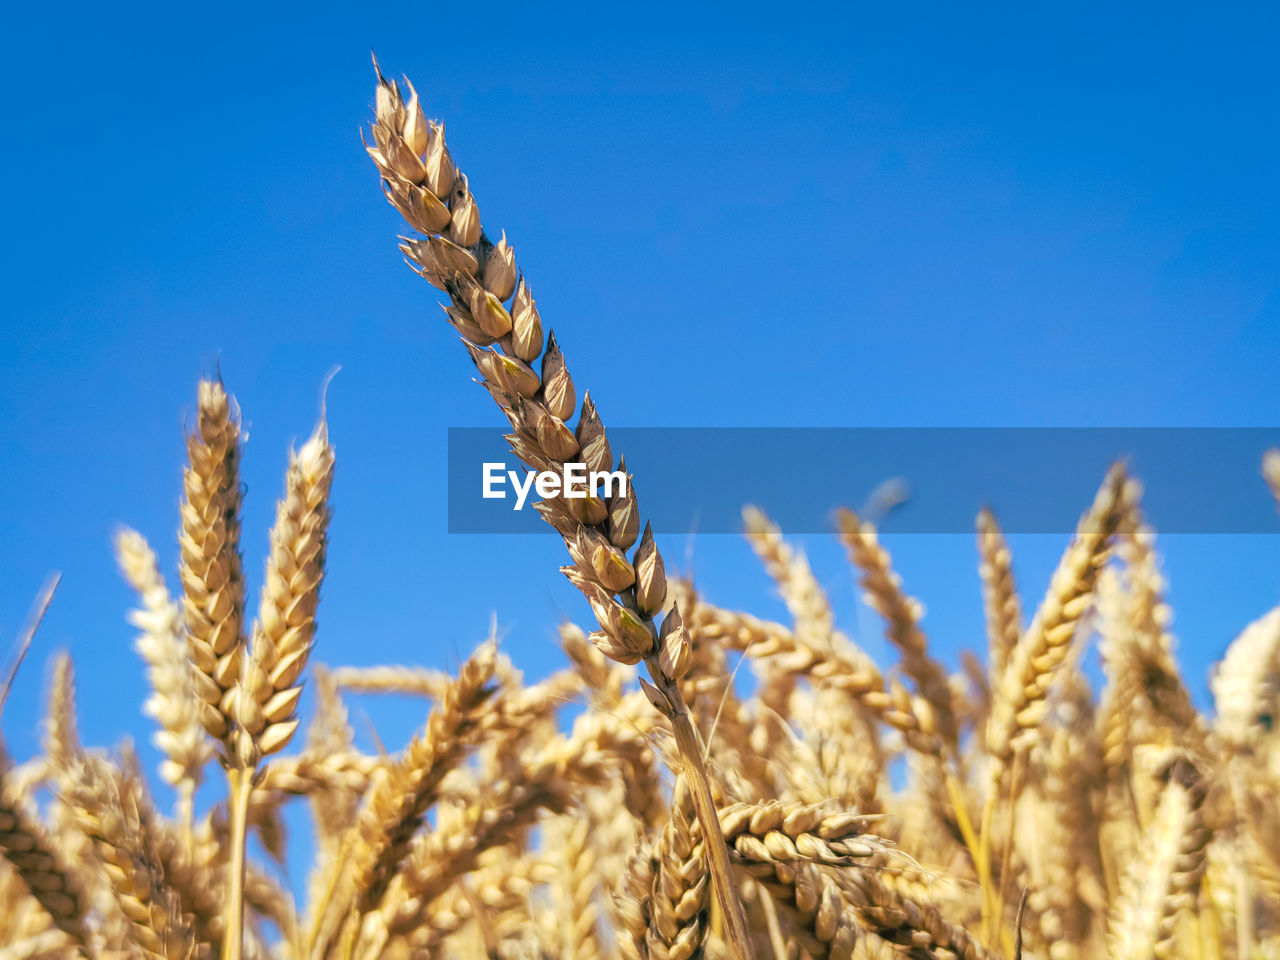 Almost ripe ears of wheat stand out nicely against a steel blue sky